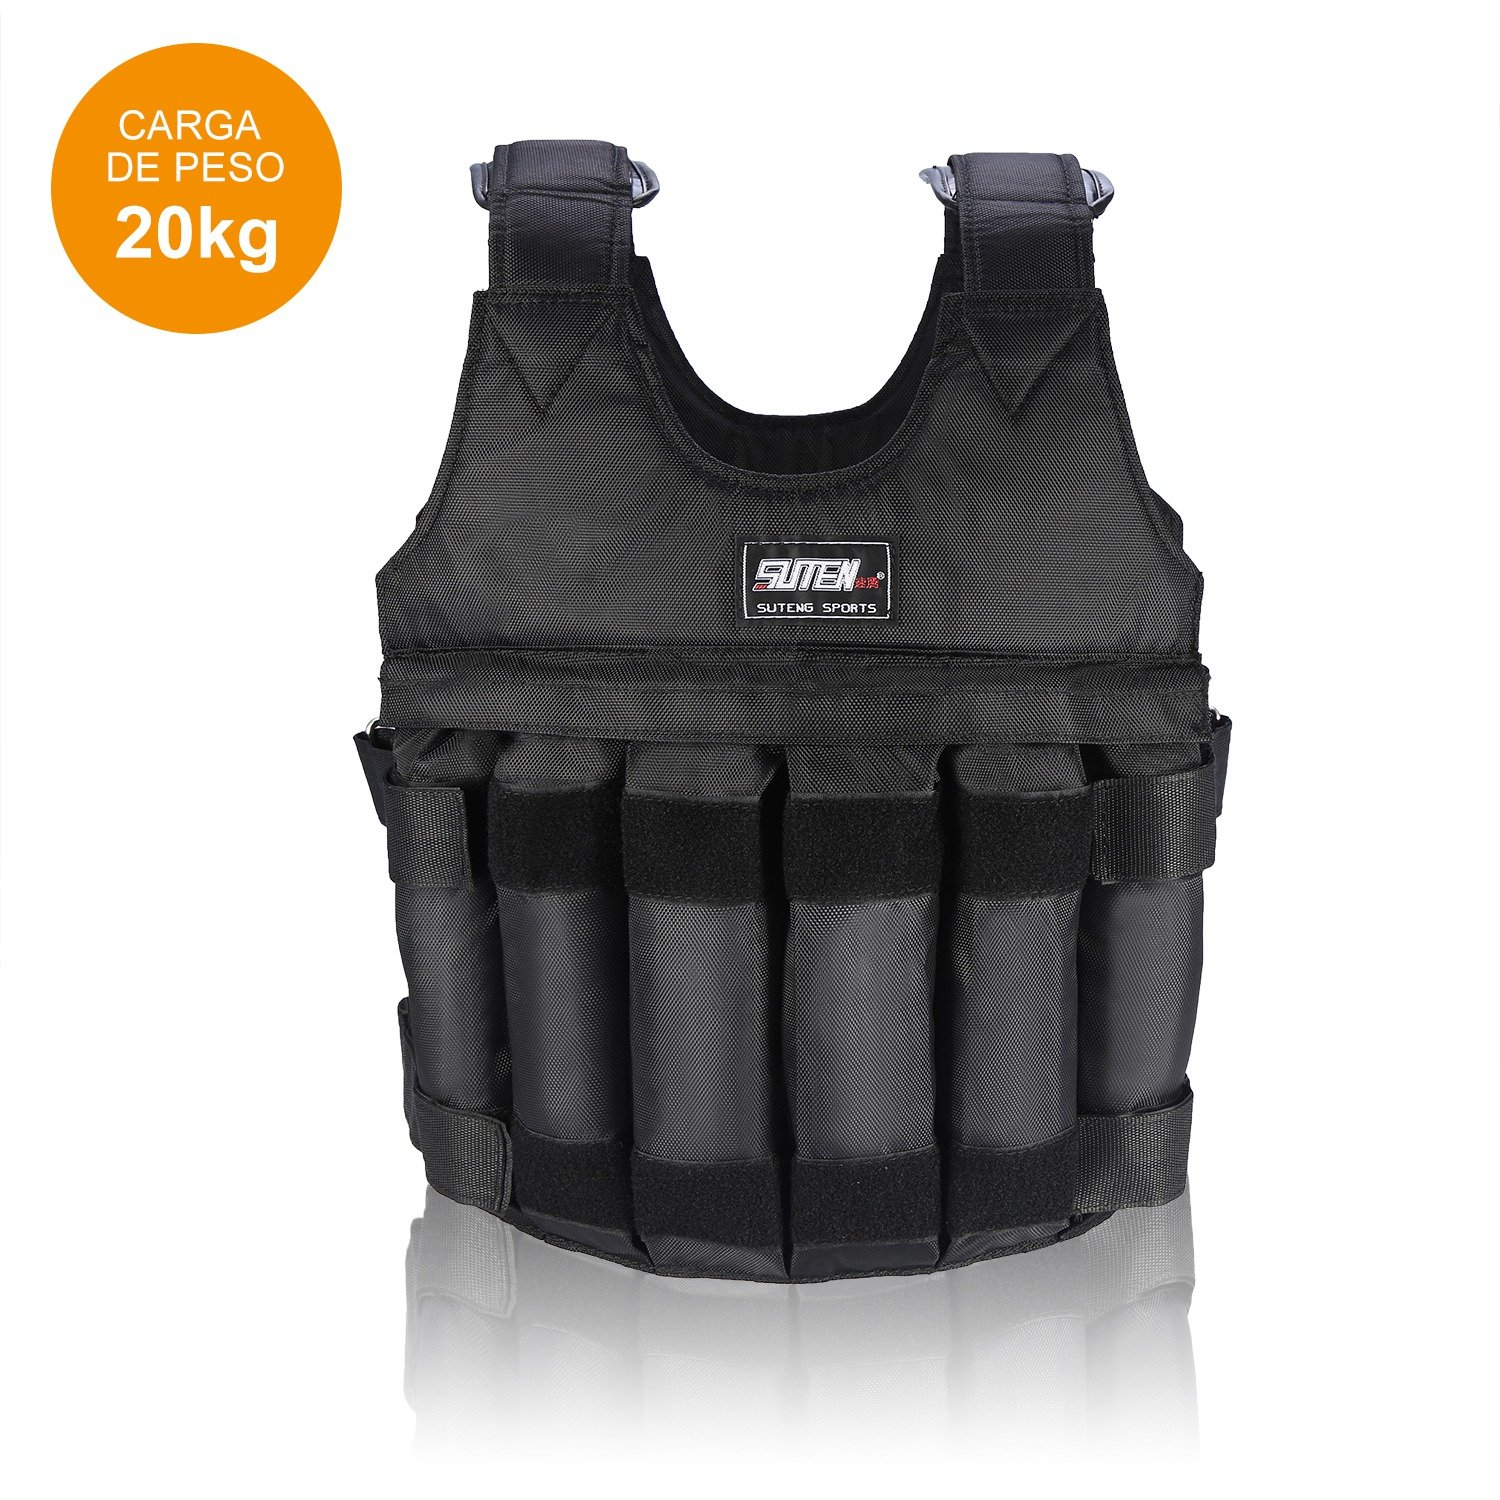 GOTOTOP Adjustable Weighted Vest, 44/110lbs Weighted Vest Jacketfor Men Cross-fit Training Exercise Jogging Fitness Workouts(Weights not Included)